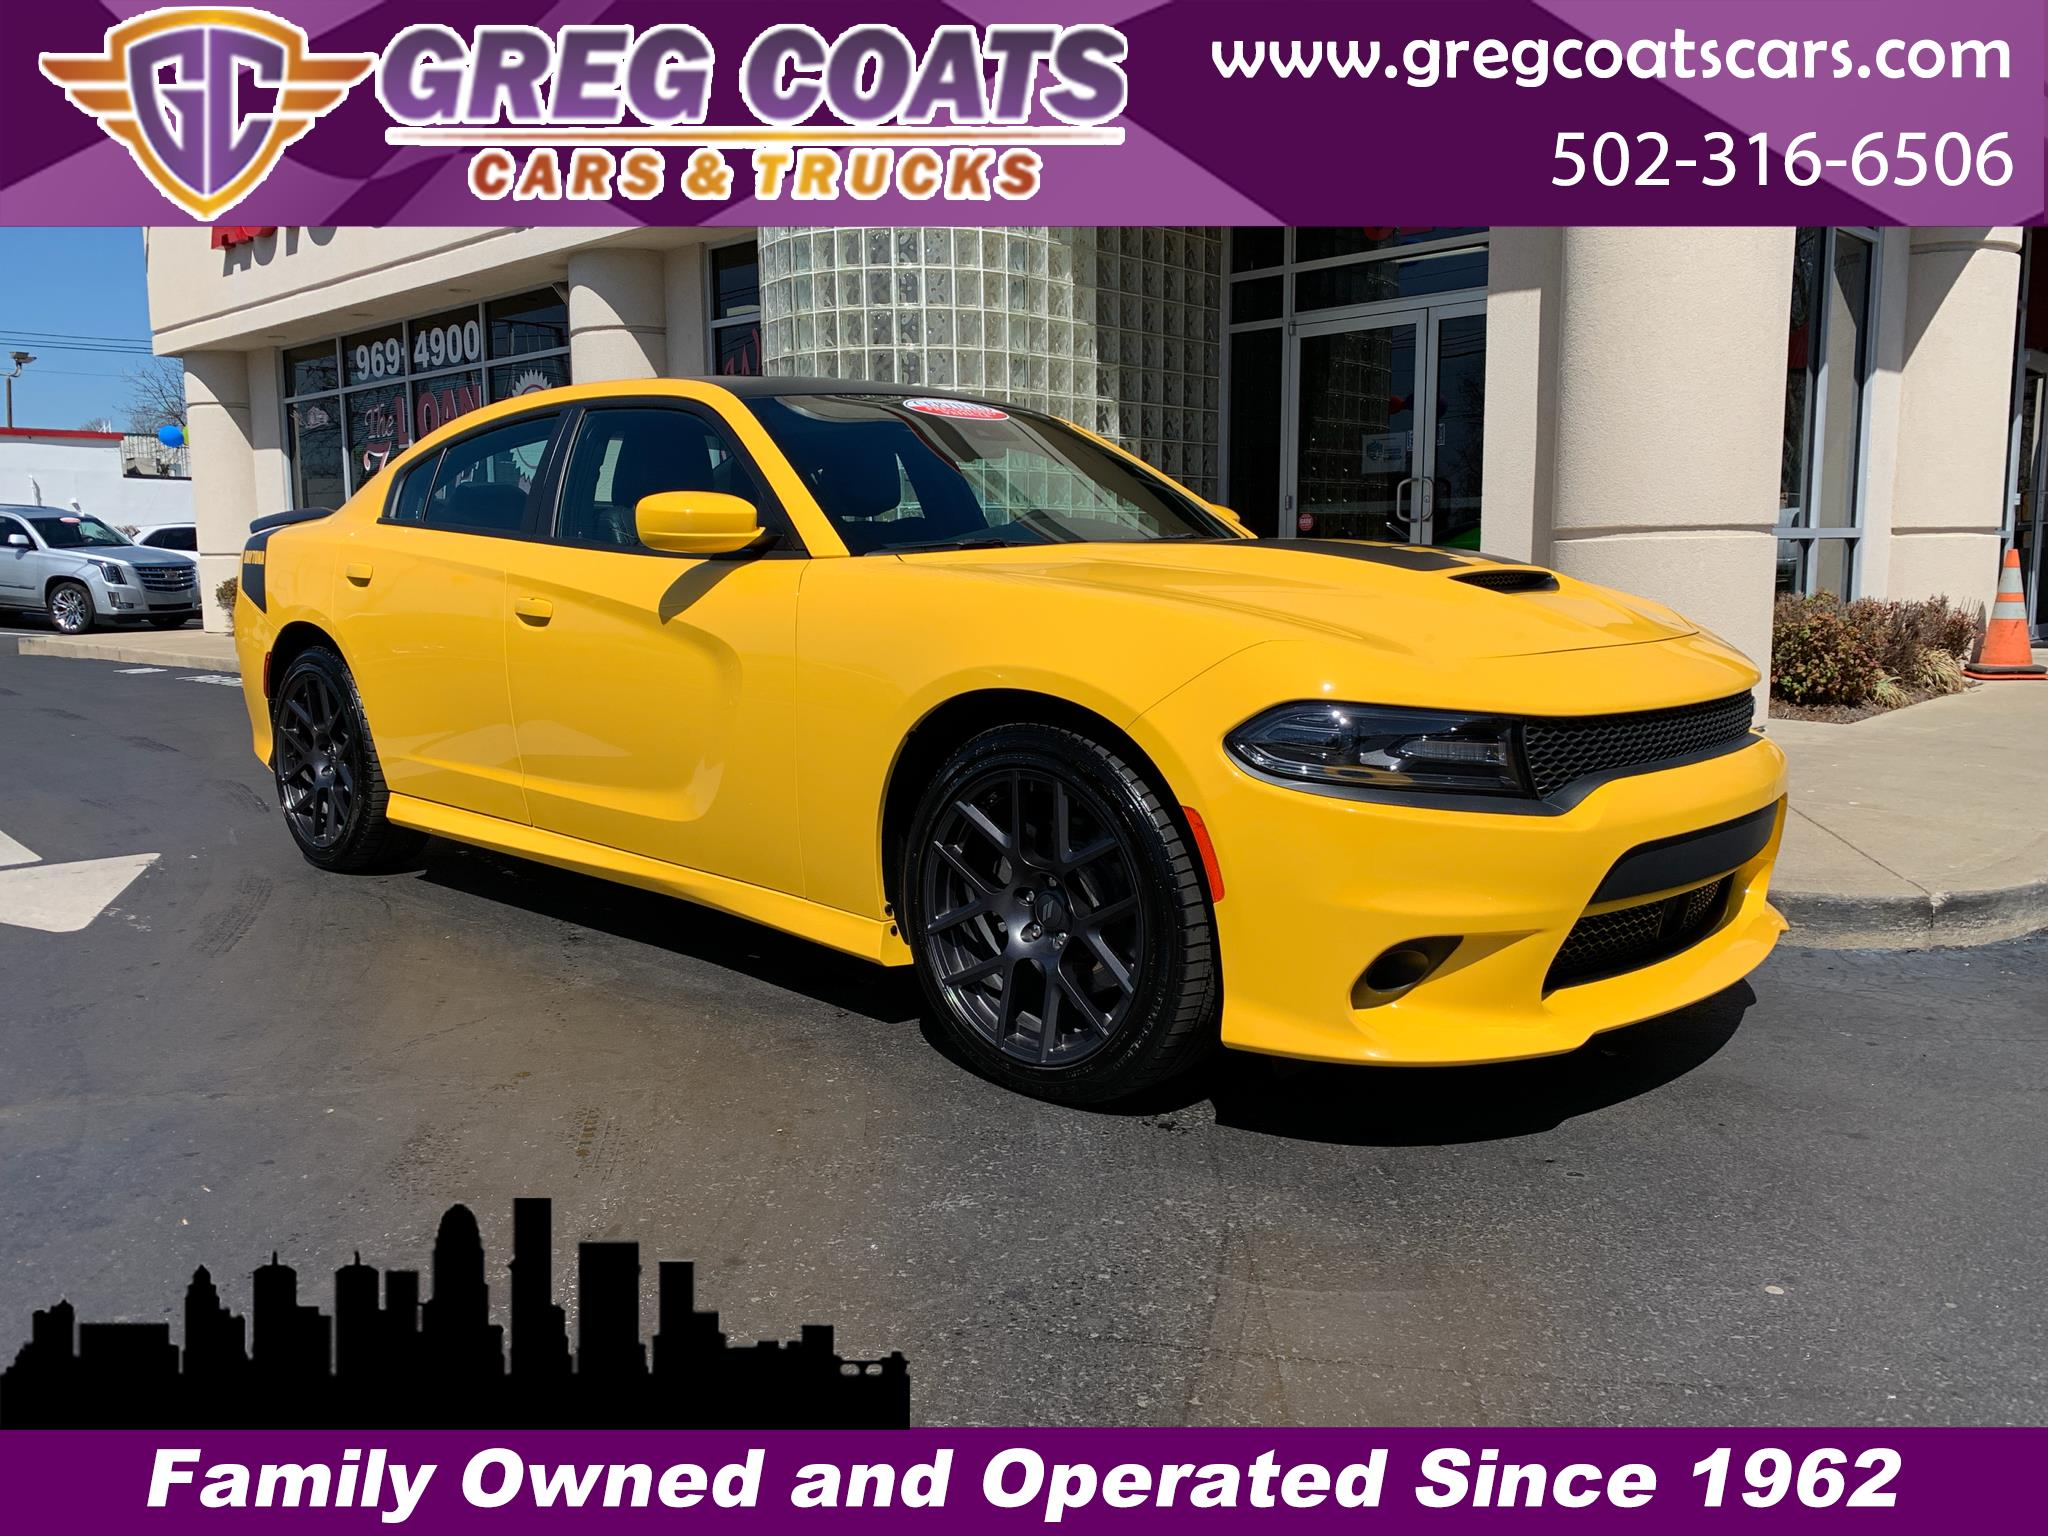 2018 Dodge Charger DAYTONA YELLOW JACKET